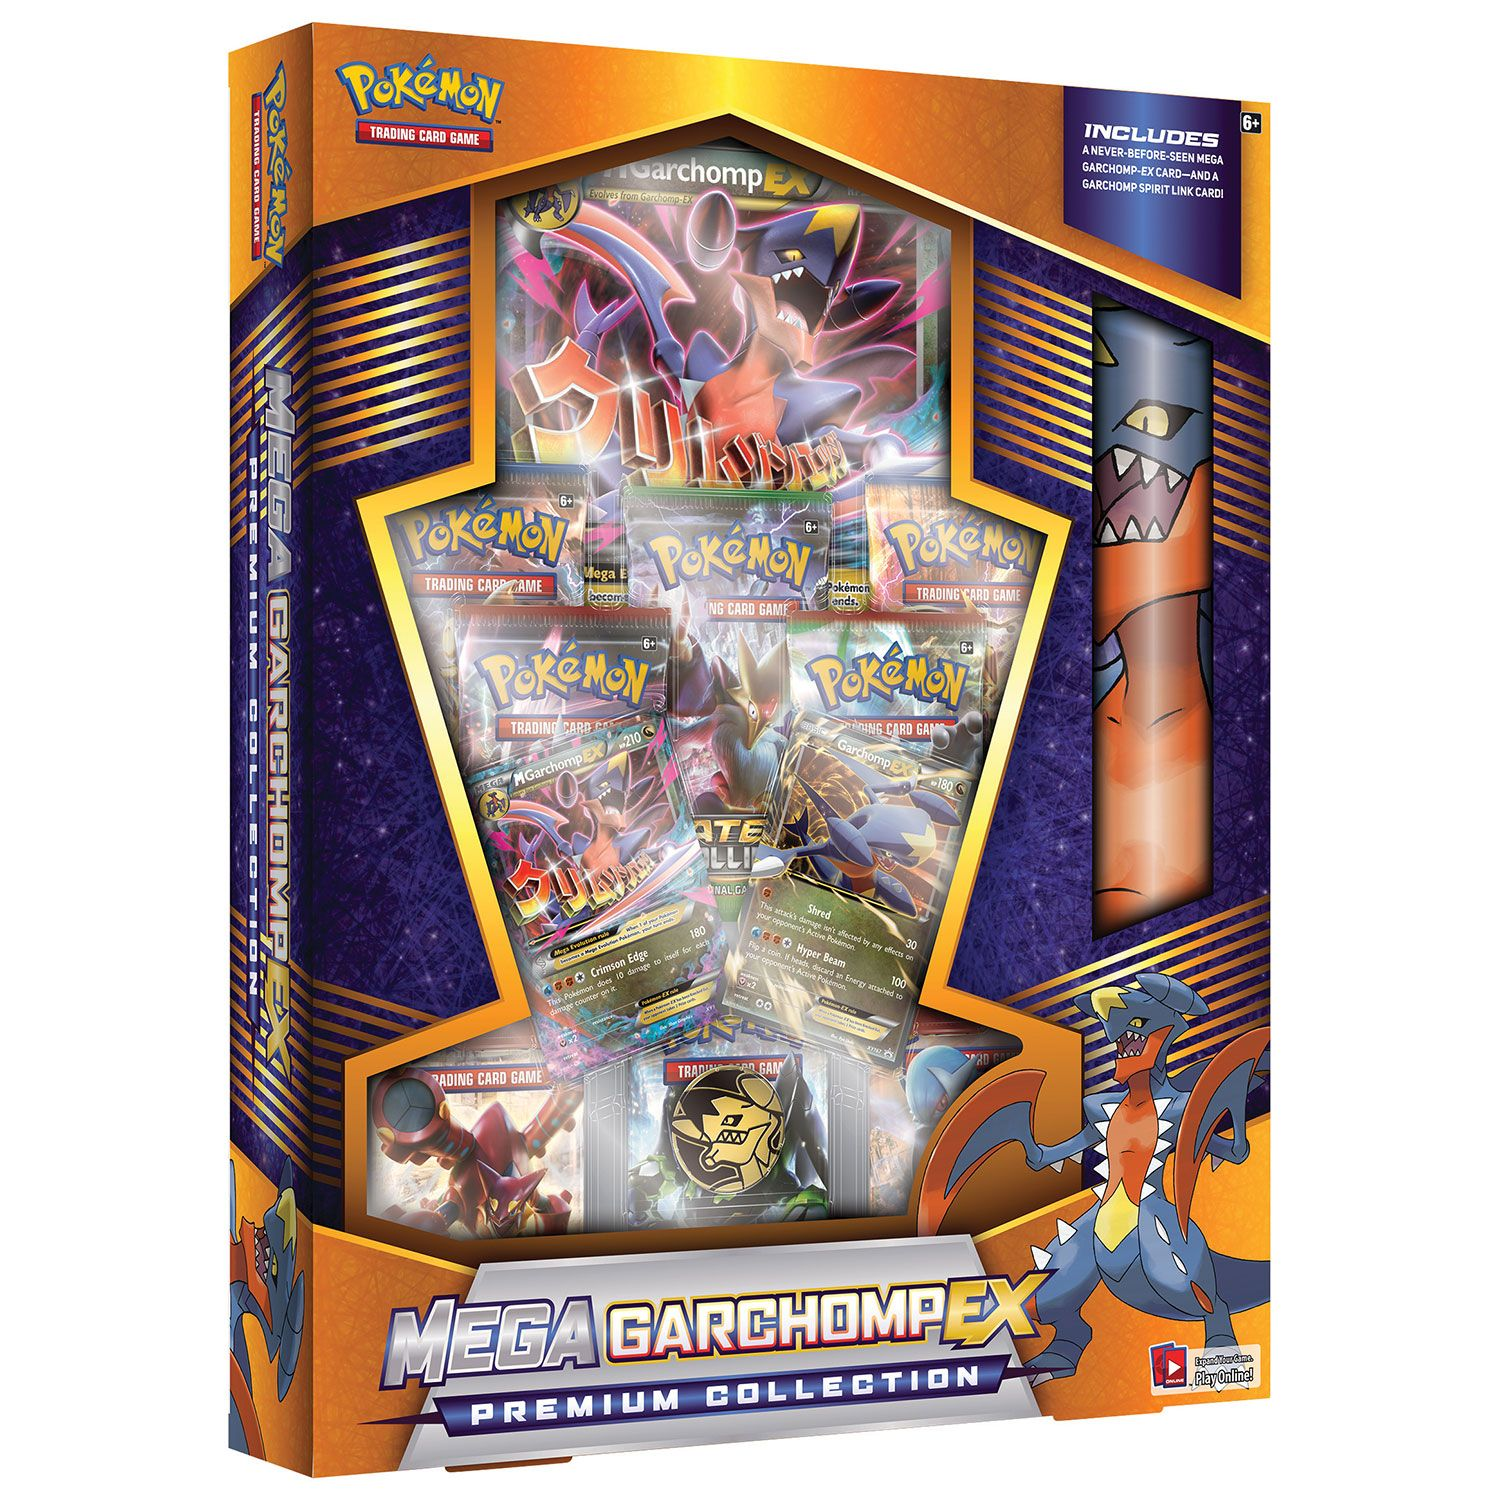 Pokémon Trading Card Game Mega Garchomp EX Premium Collection